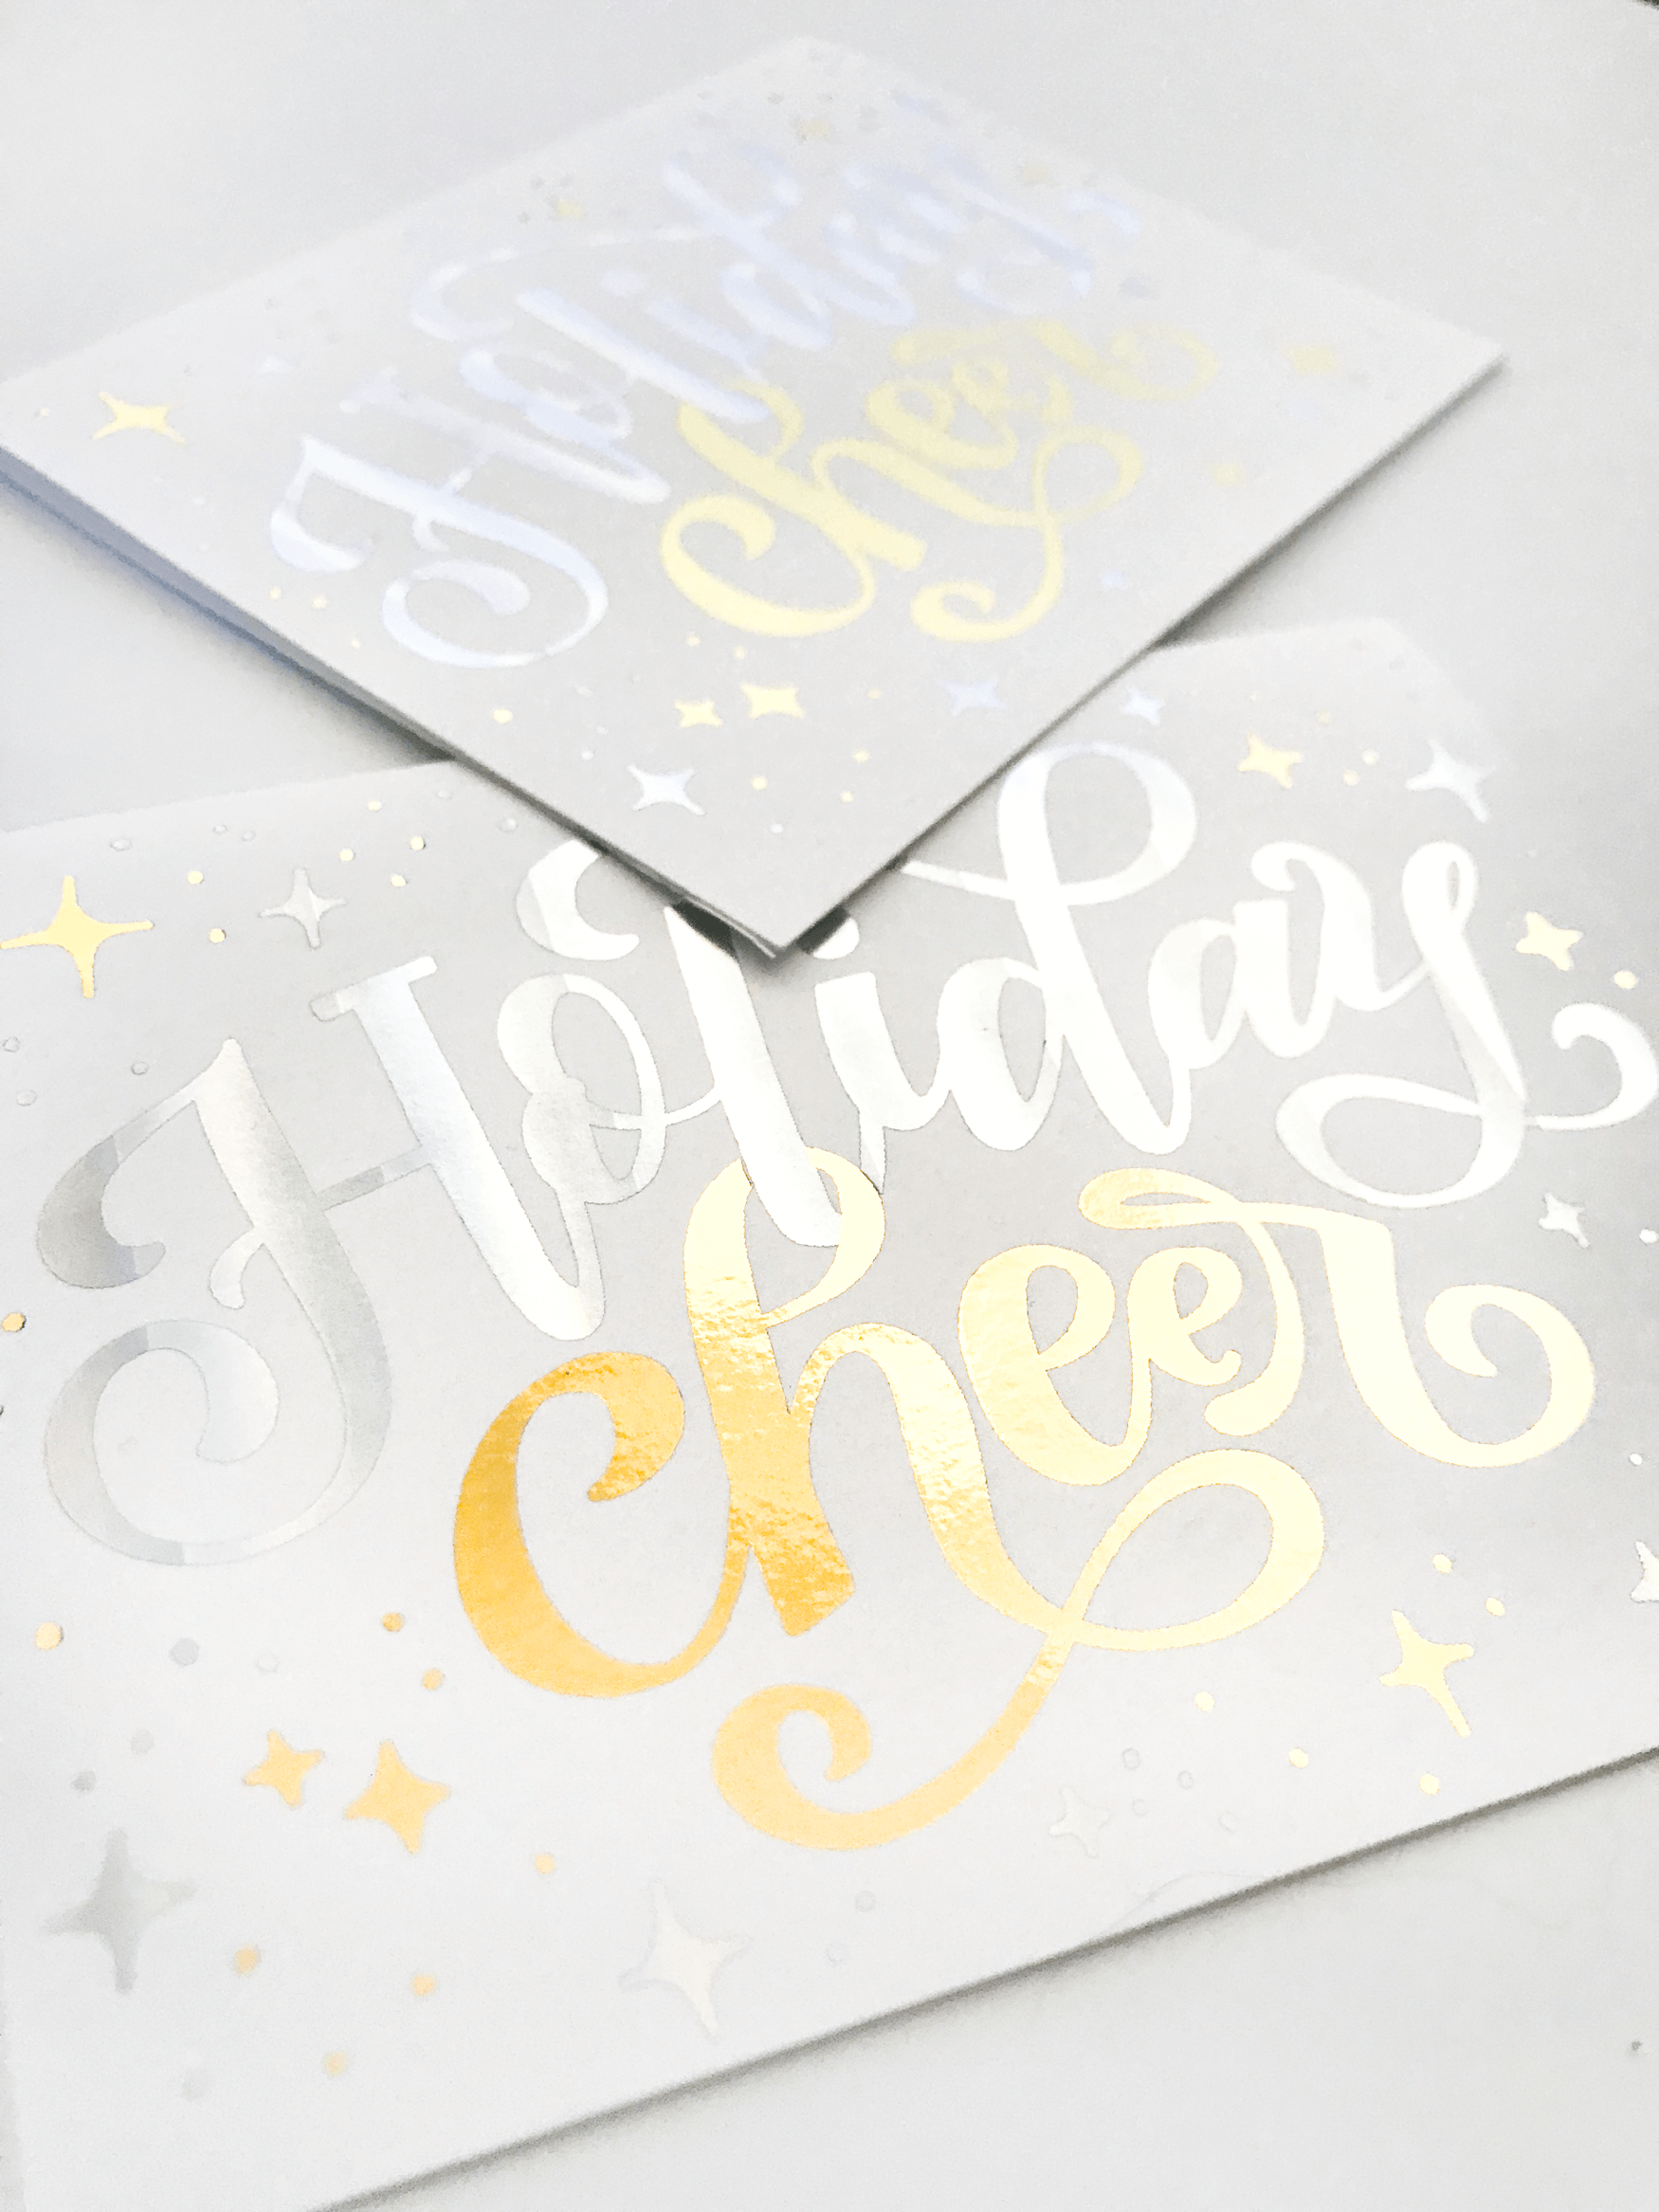 Learn everything you need to know about foiling using the Heidi Swapp Minc machine in this 4 part video tutorial series from Amanda Arneill, hand lettering artist and teacher.